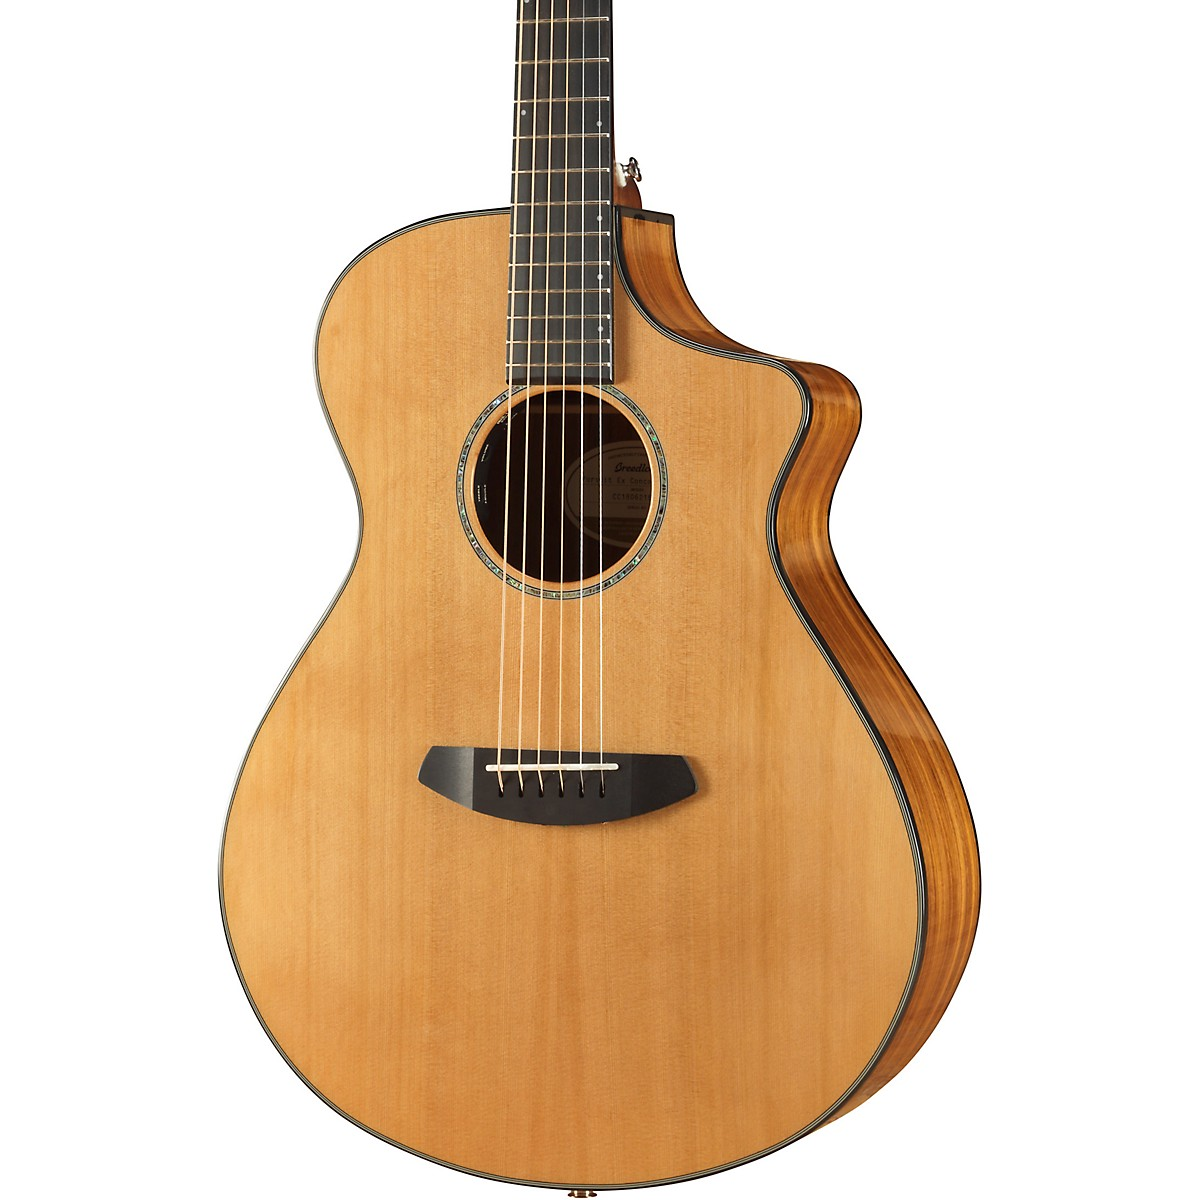 Breedlove Pursuit Concert All-Gloss Red Cedar-Ovangkol Acoustic-Electric Guitar With Gig Bag